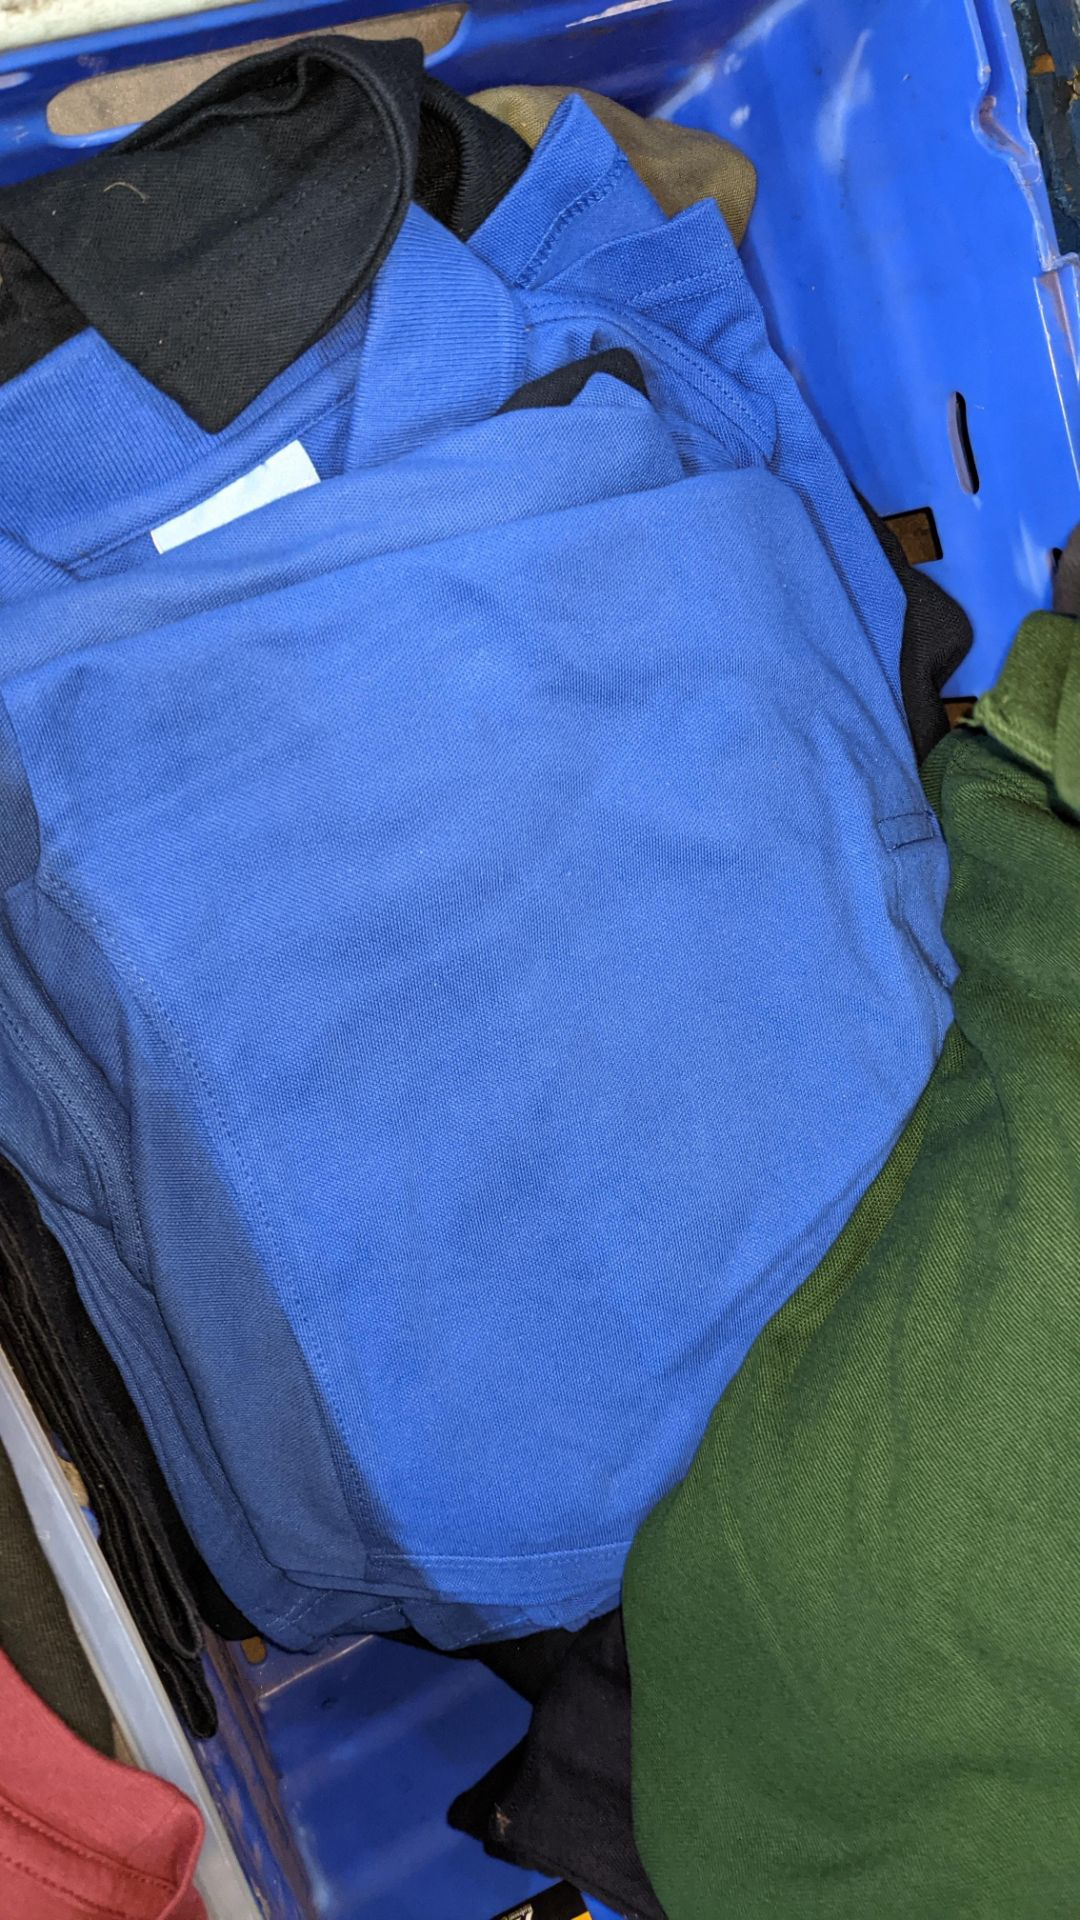 Approx 23 off Uneek assorted blue polo shirts - Image 4 of 6